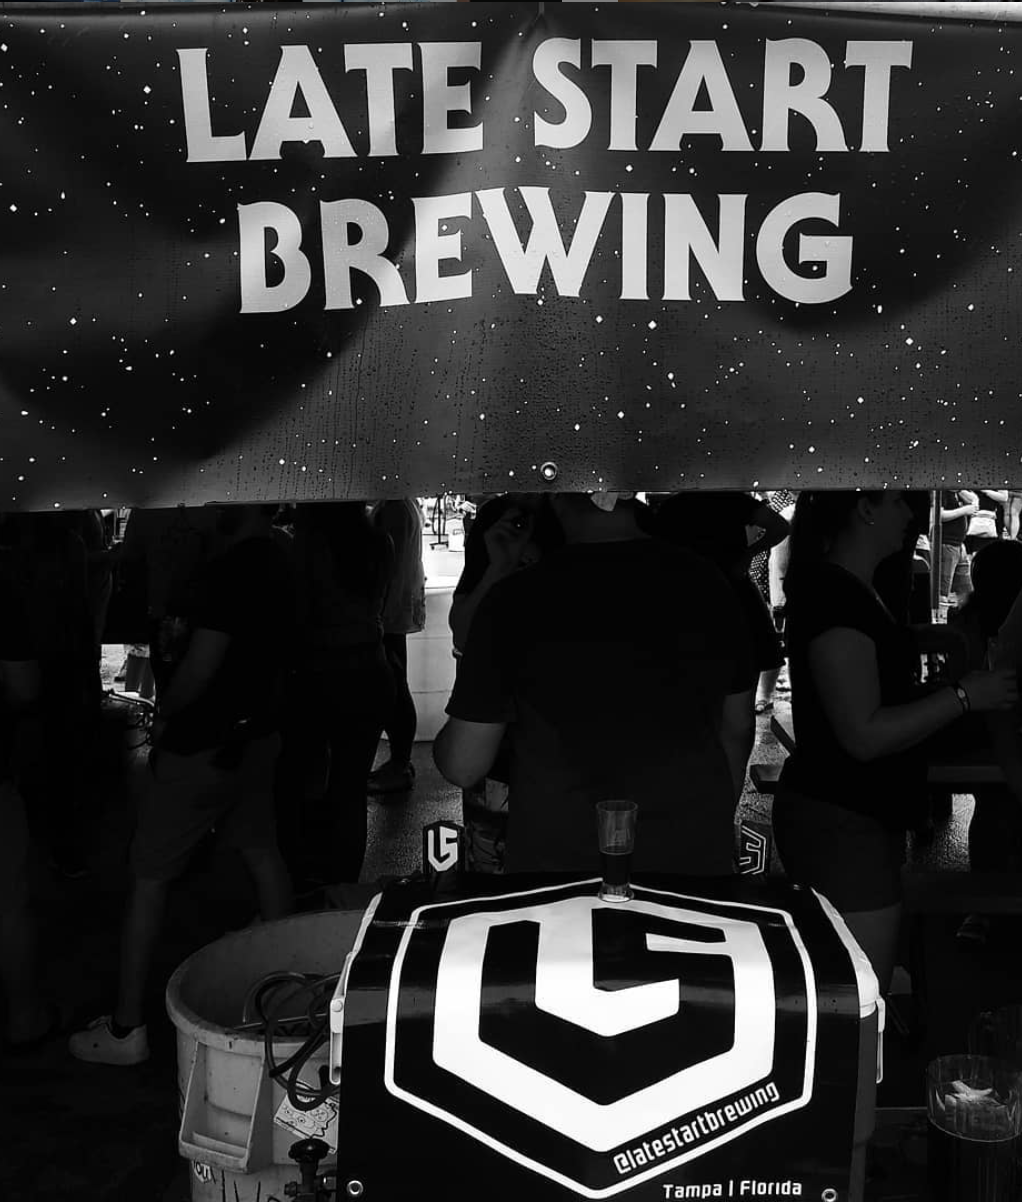 Late Start Brewing at WakeFest